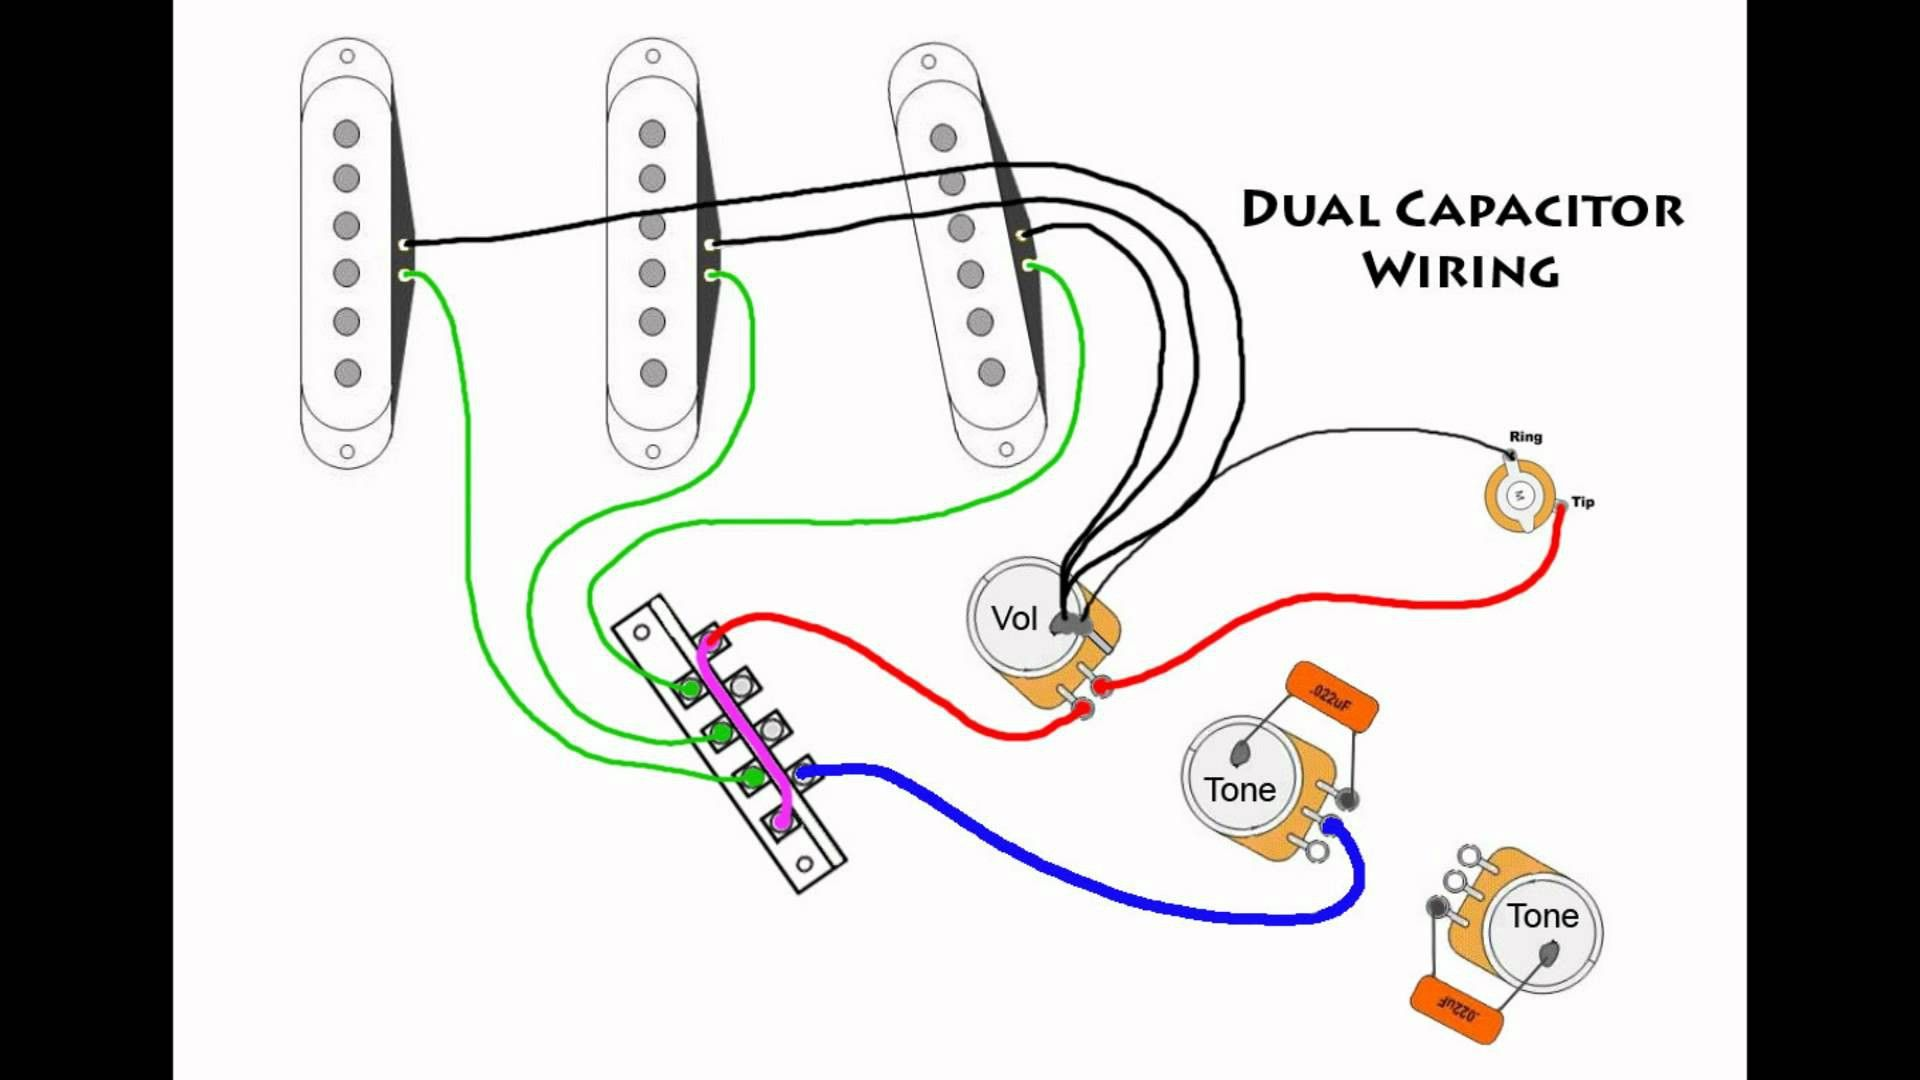 hight resolution of fender stratocaster wiring diagram best of strat throughout diagramsfender stratocaster wiring diagram best of strat throughout